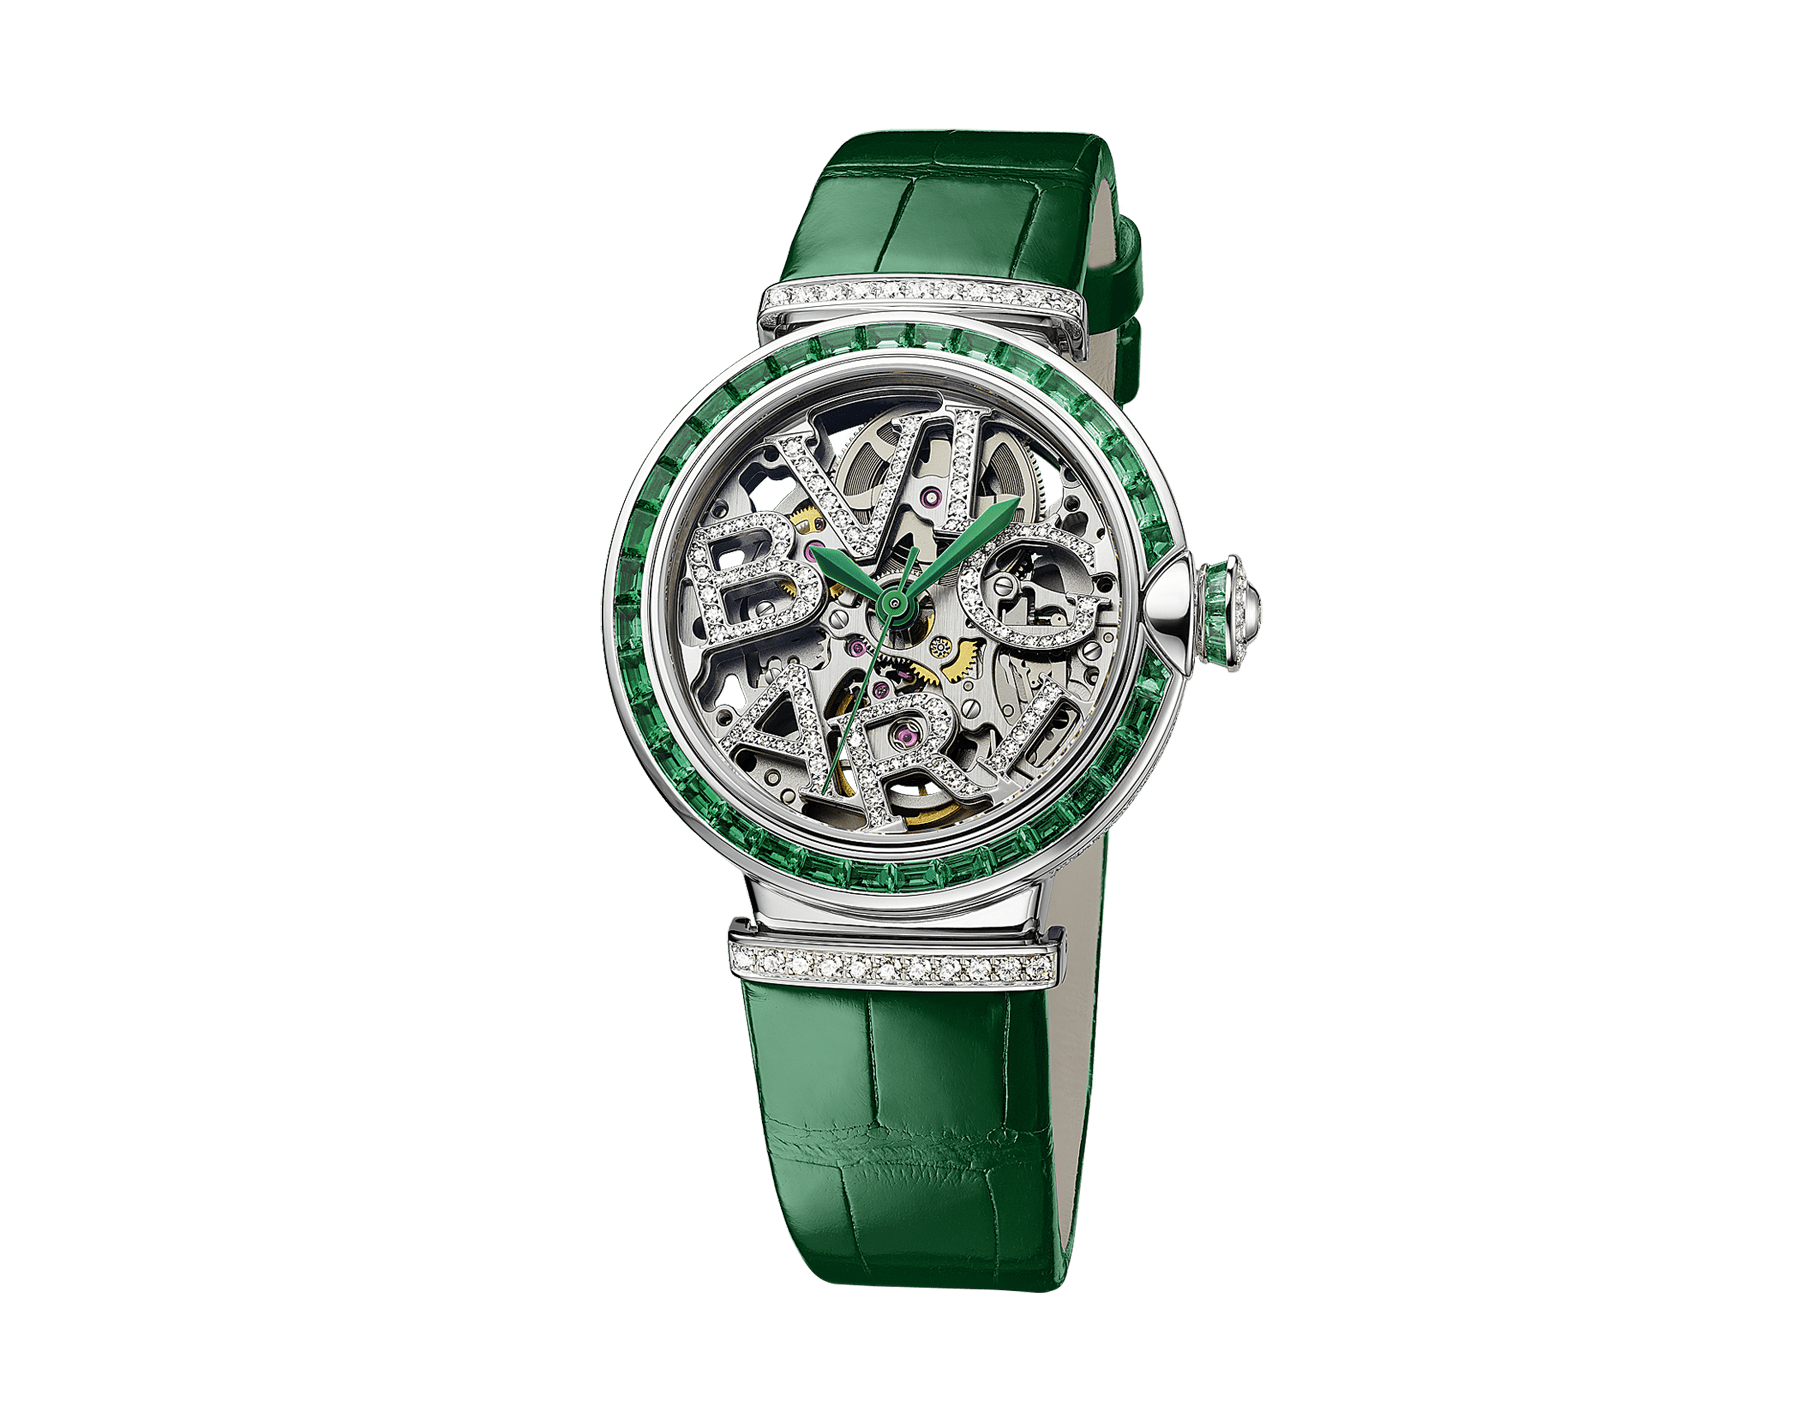 LVCEA Skeleton watch with mechanical movement, automatic winding, 18 kt white gold case set with baguette-cut emeralds, 18 kt white gold openwork BVLGARI logo dial set with brilliant-cut diamonds, green alligator bracelet and 18 kt white gold links set with brilliant-cut diamonds 103033 image 2